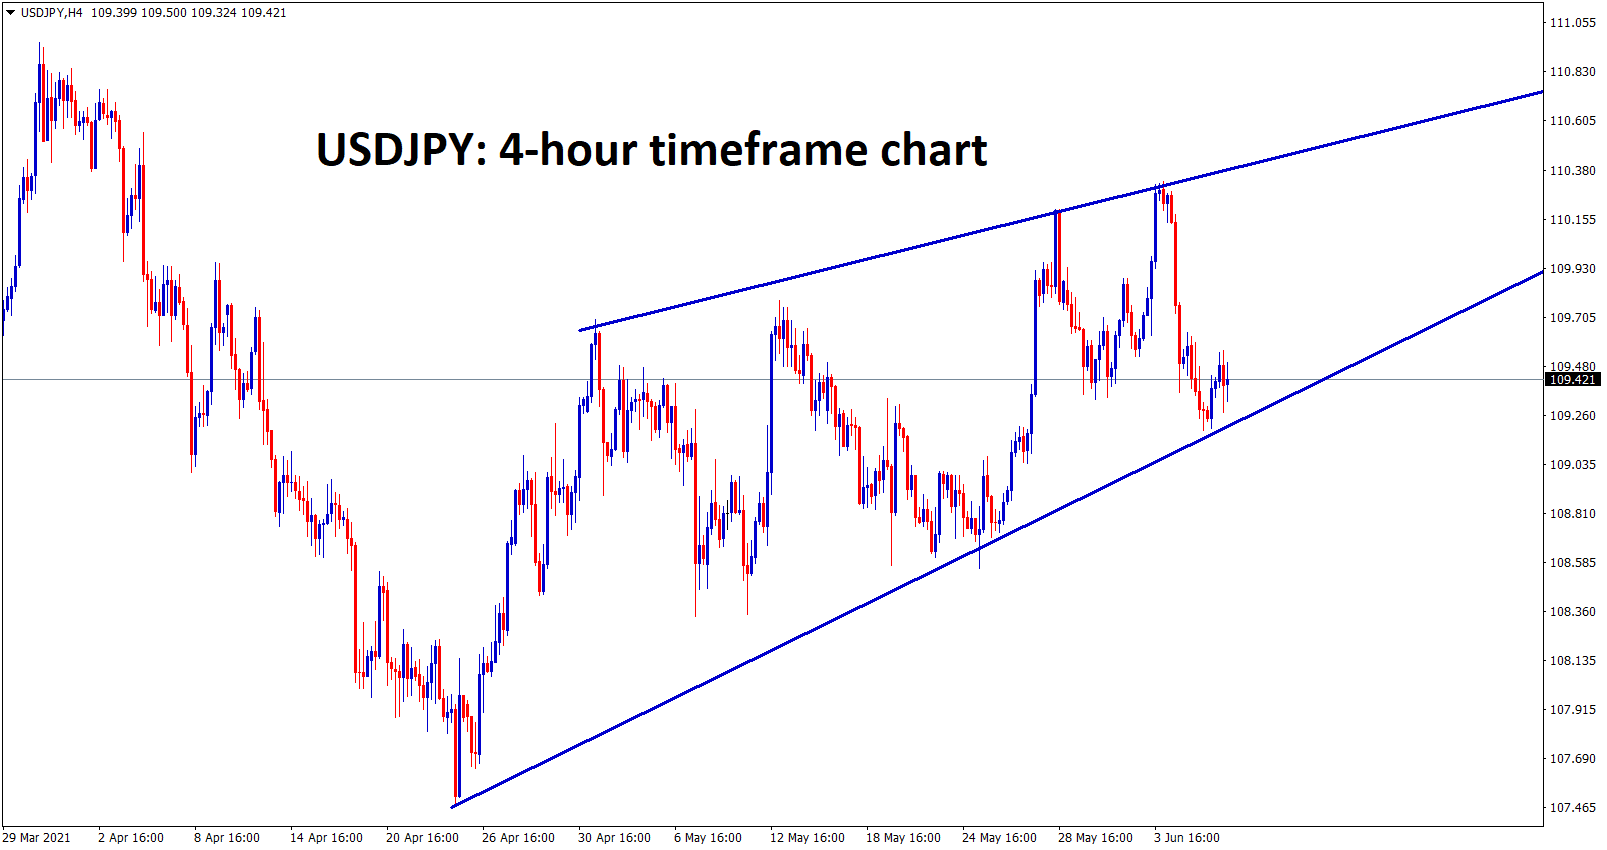 USDJPY is at the bottom level of the rising wedge pattern